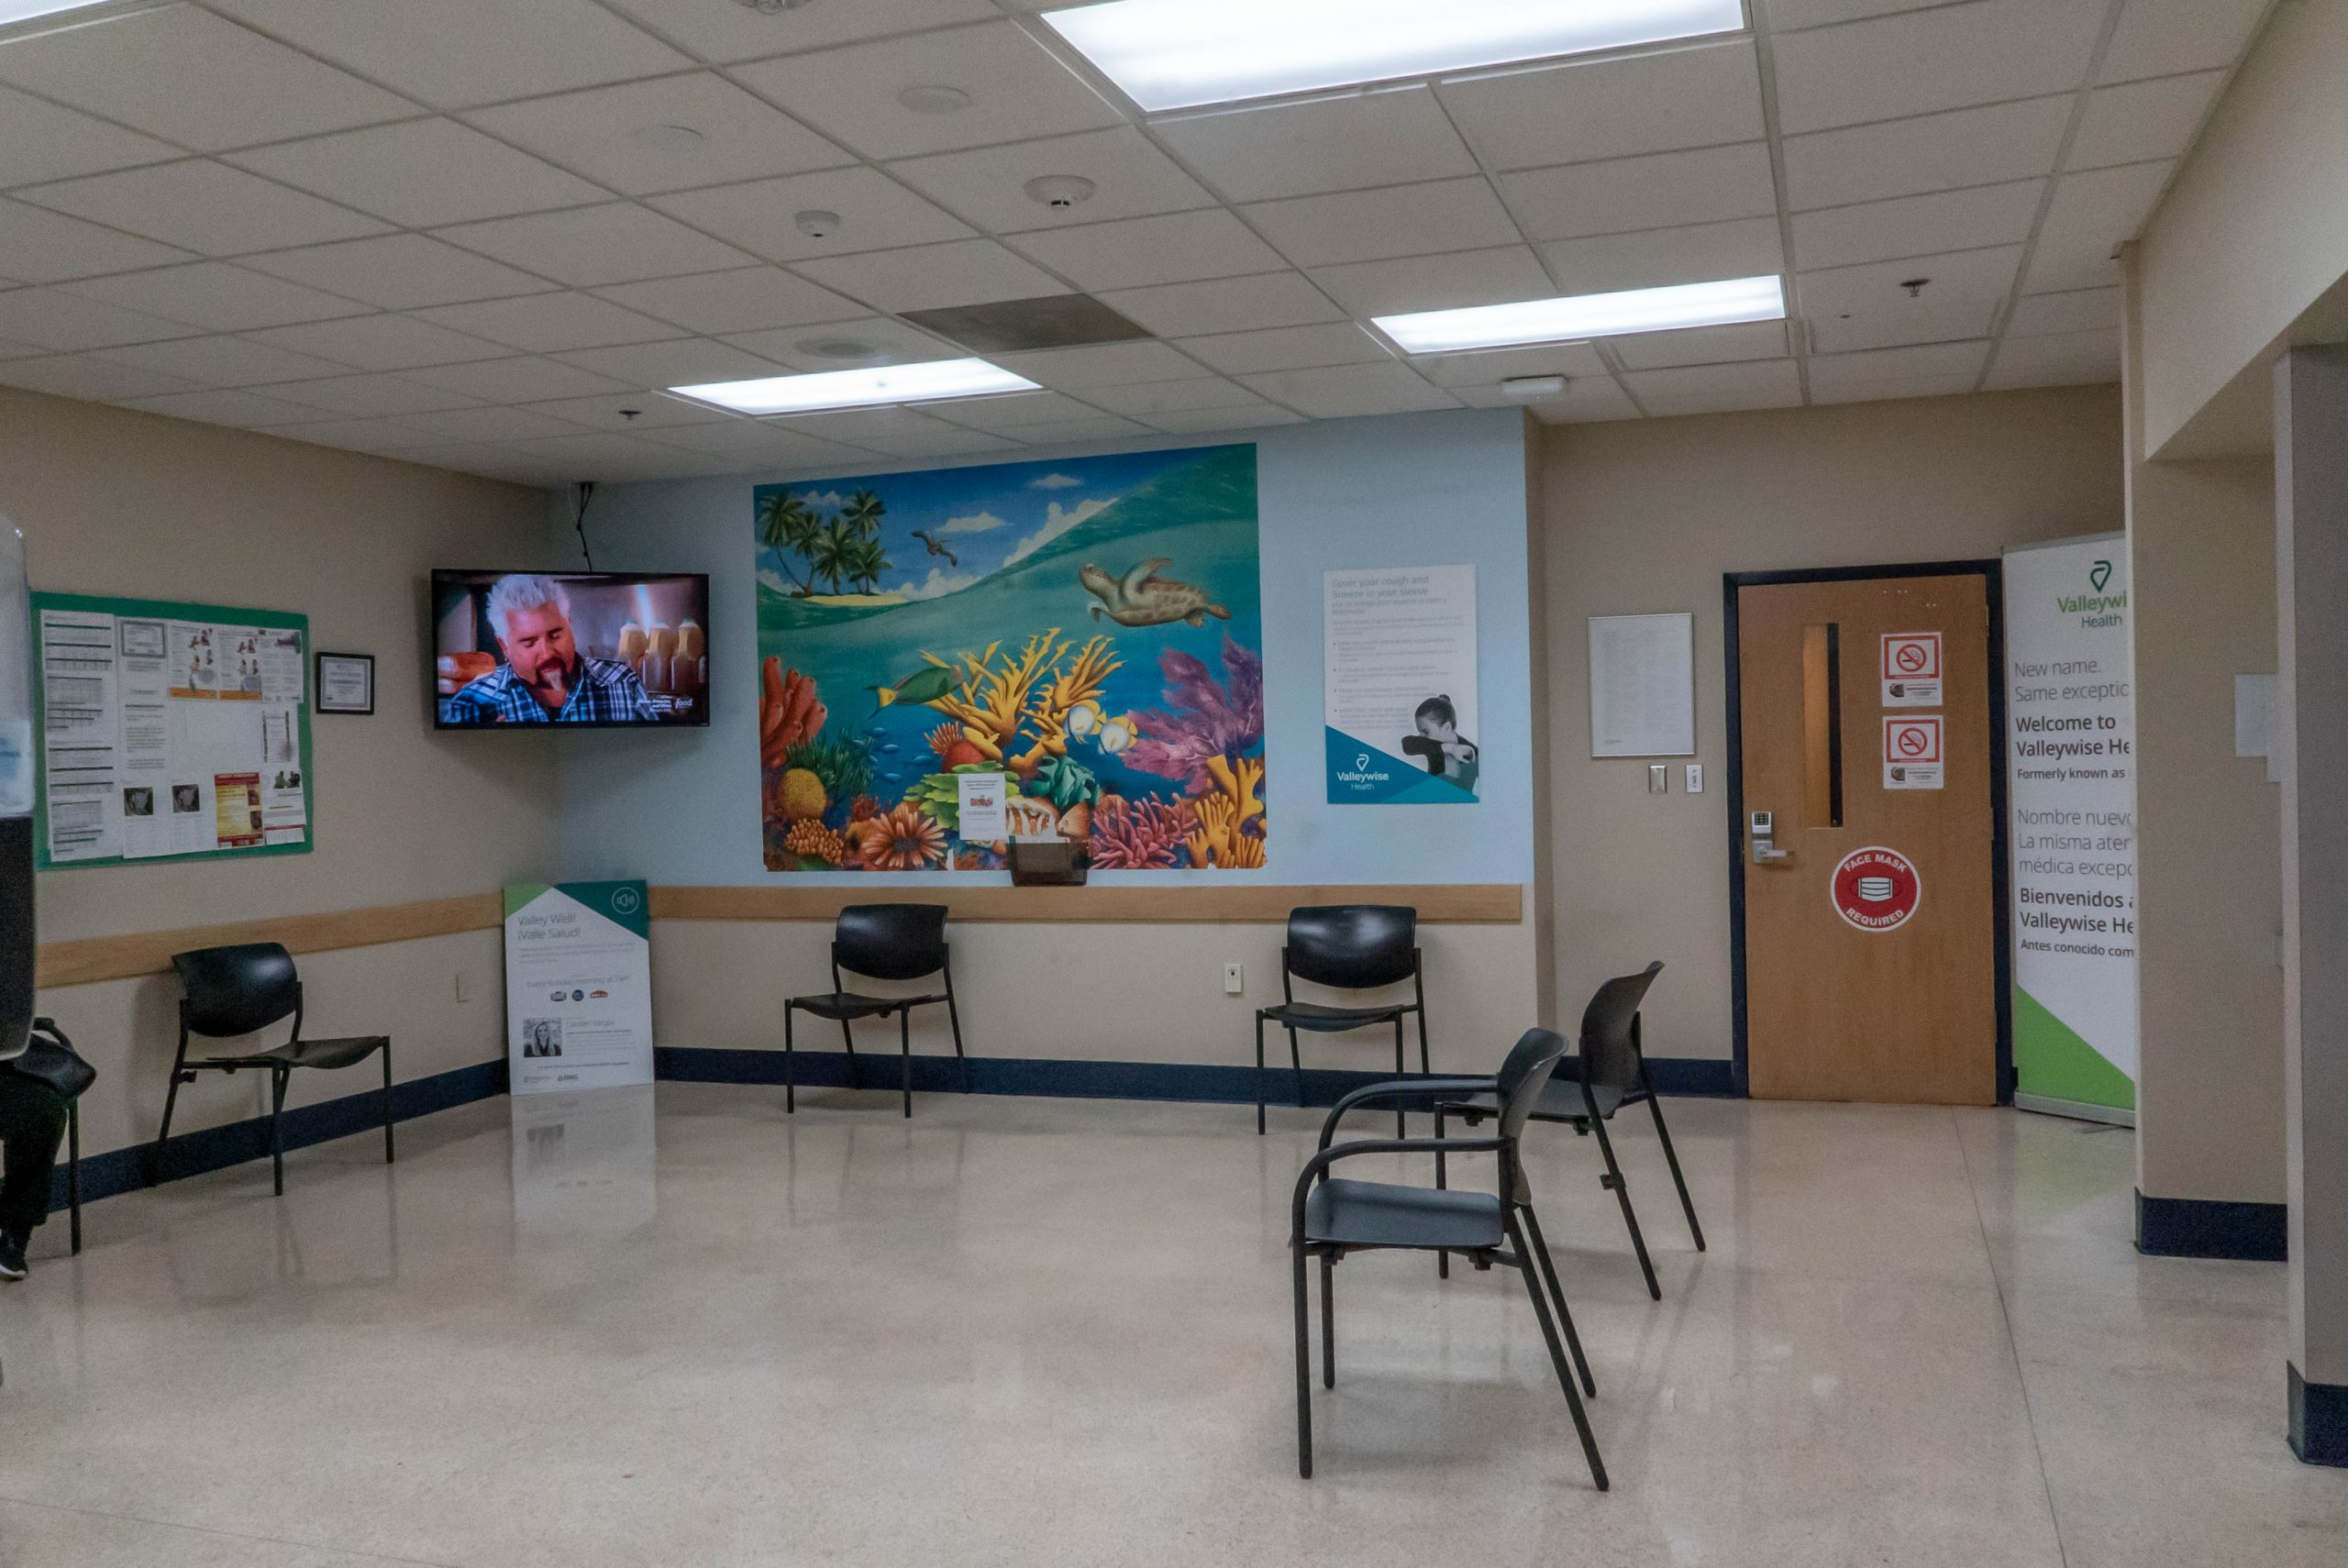 Valleywise Health Center waiting room with 4 chairs